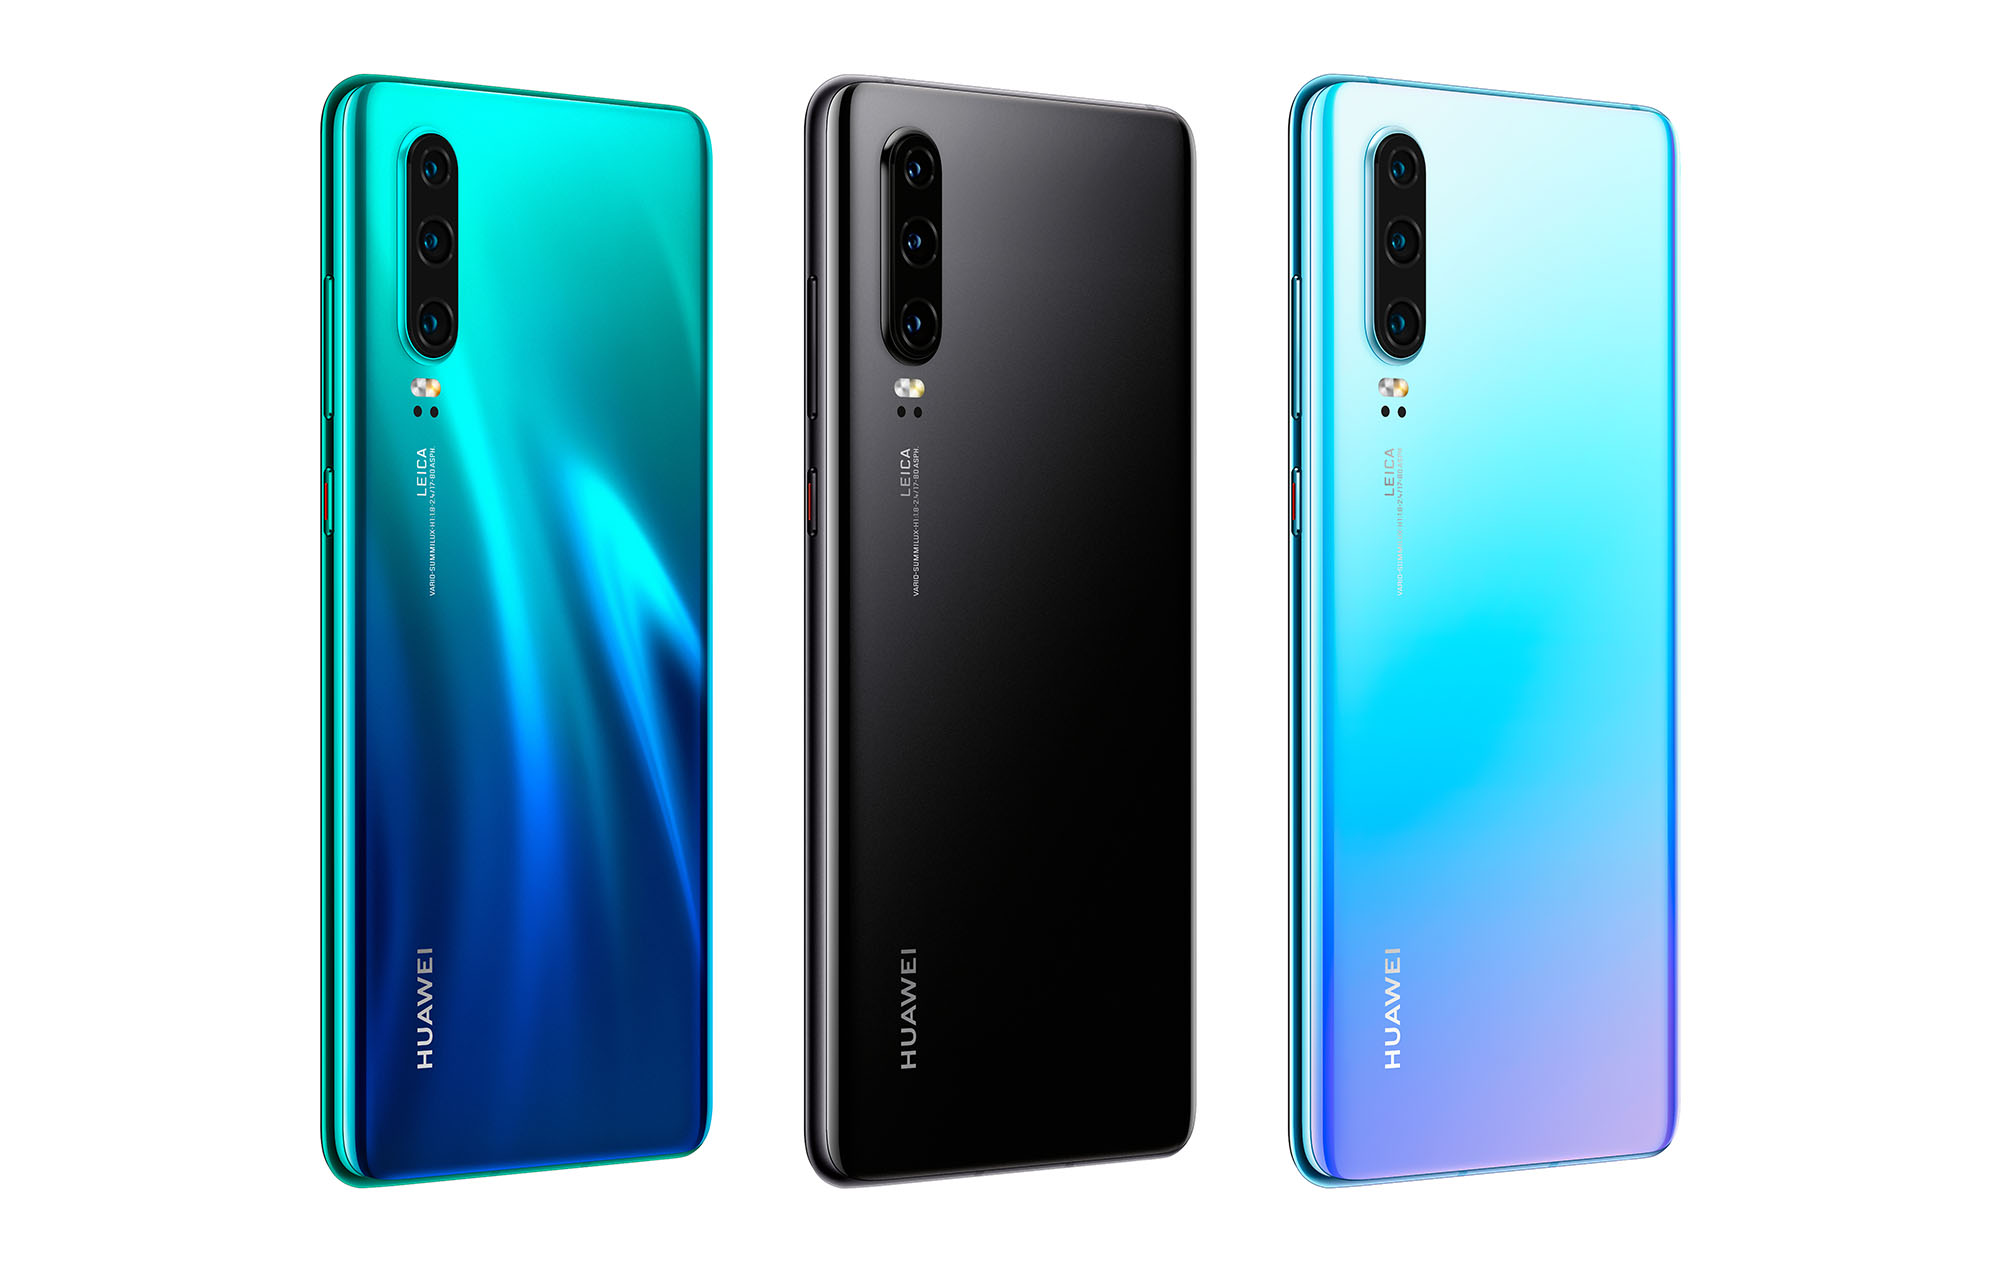 Huawei P30 in Aurora, Black und Breathing Crystal